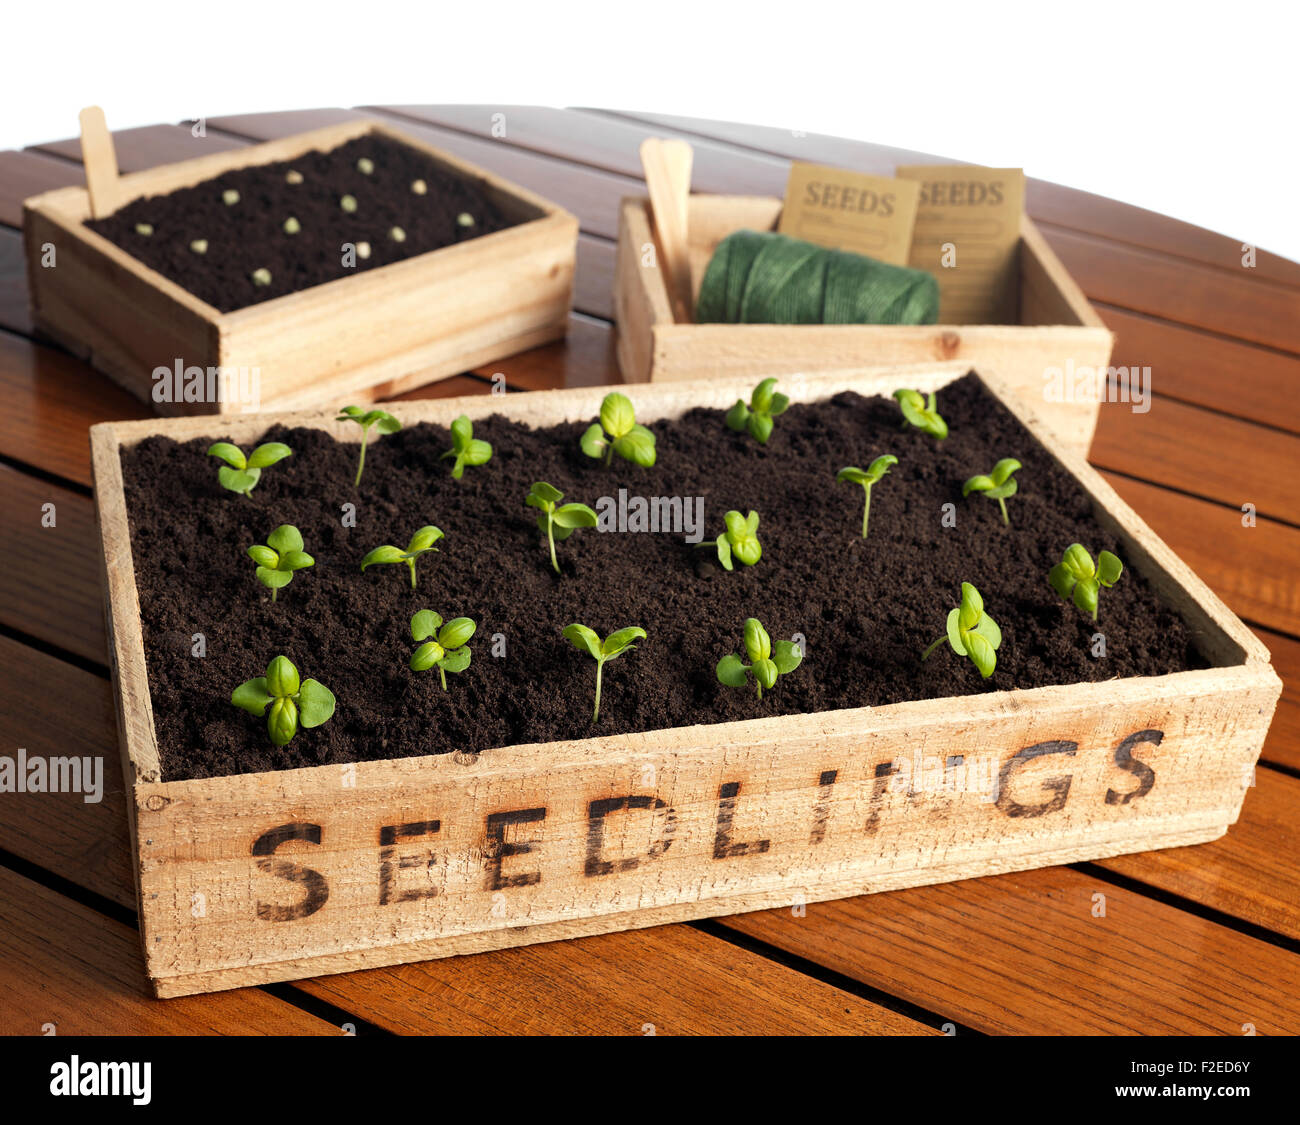 Seedling box with new growth - Stock Image